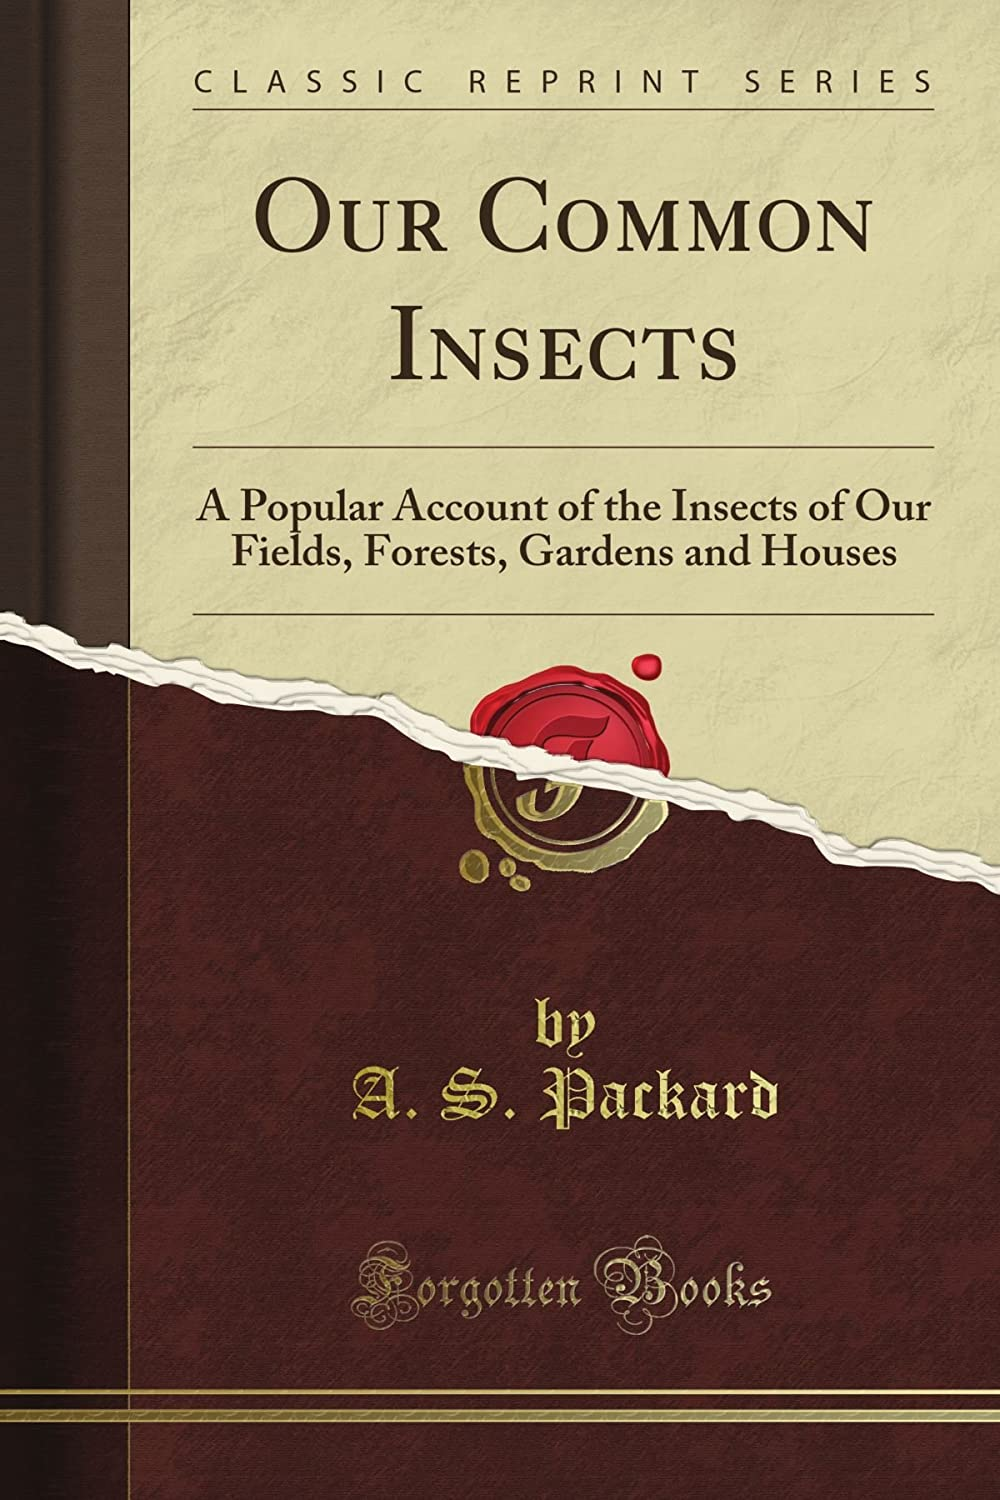 Our Common Insects: A Popular Account of the Insects of Our Fields, Forests, Gardens and Houses (Classic Reprint)